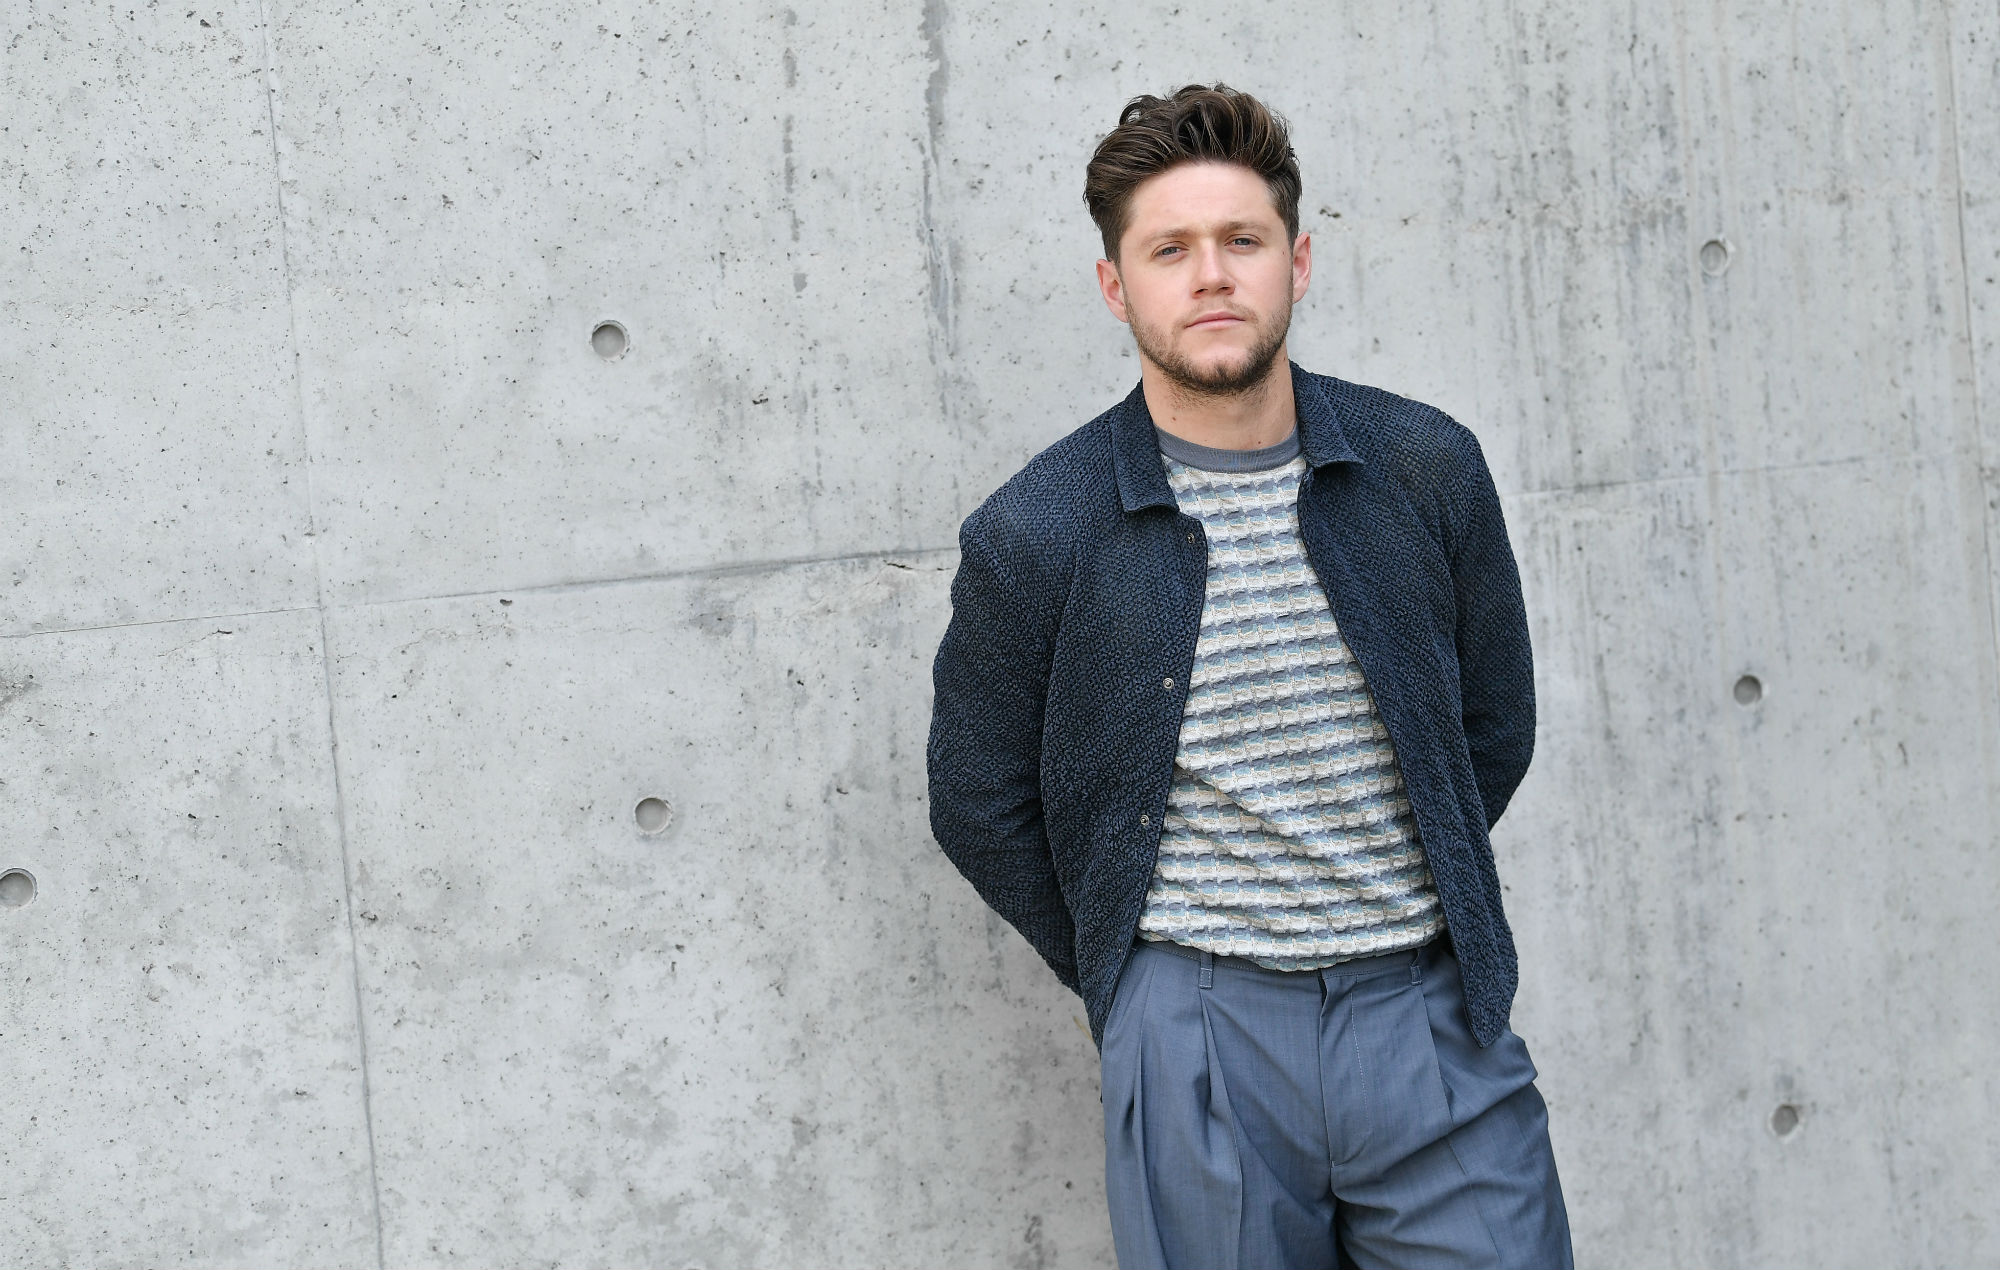 Niall Horan Heartbreak Weather Review A Great Voice Let Down By Some Not Great Songs Nme